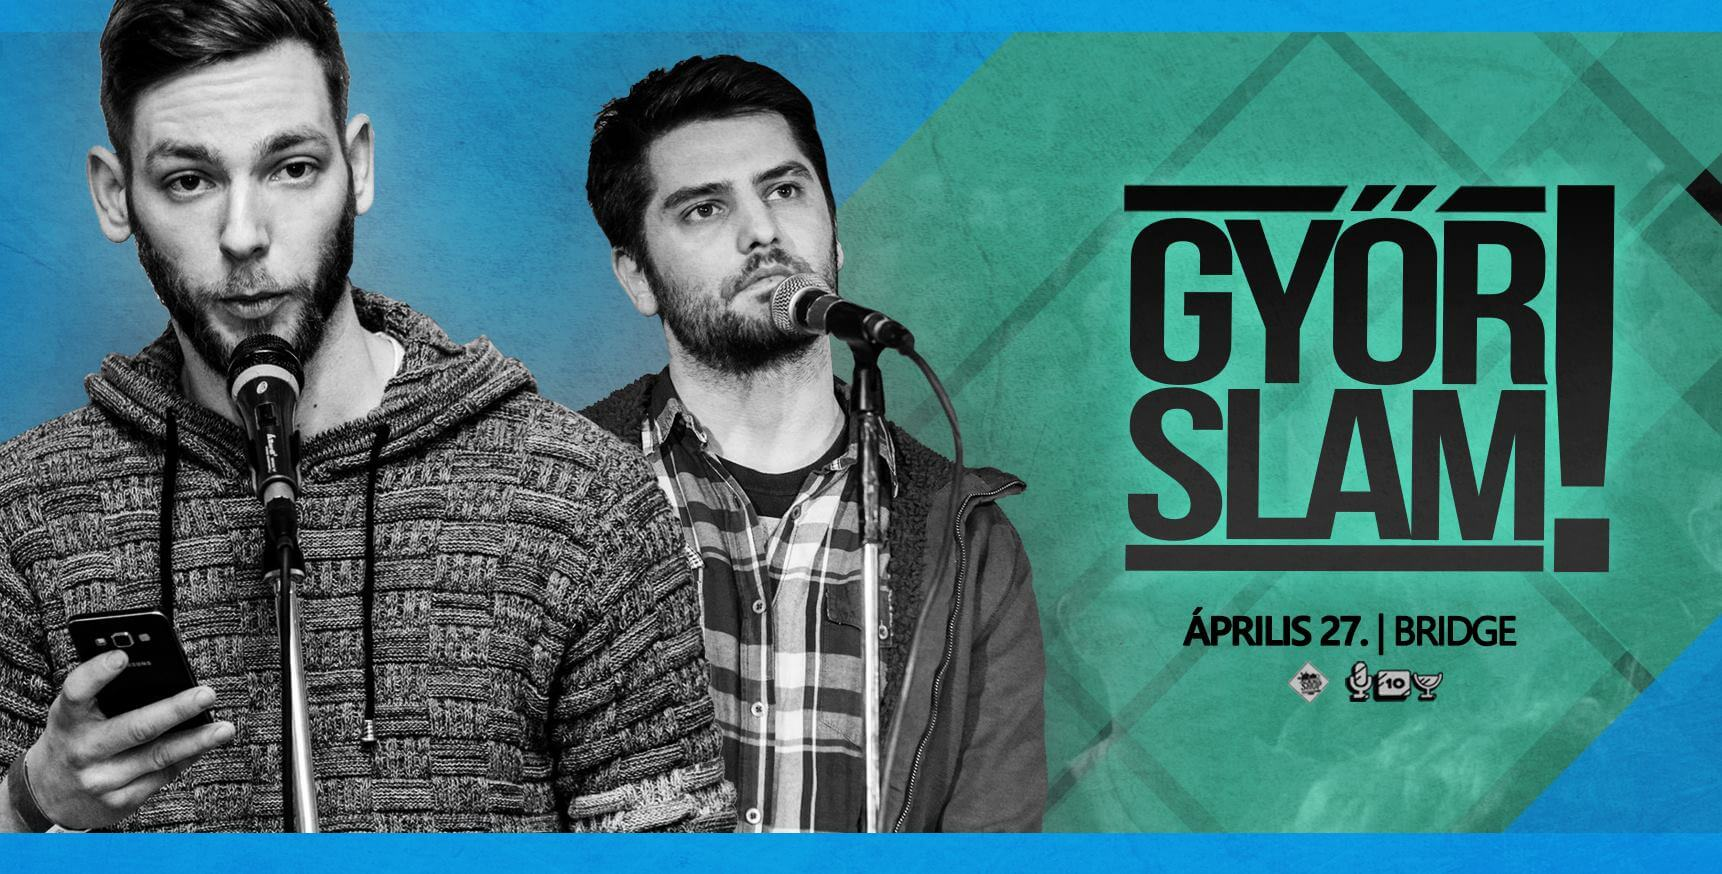 Győrslam! Klub @Bridge /04.27./